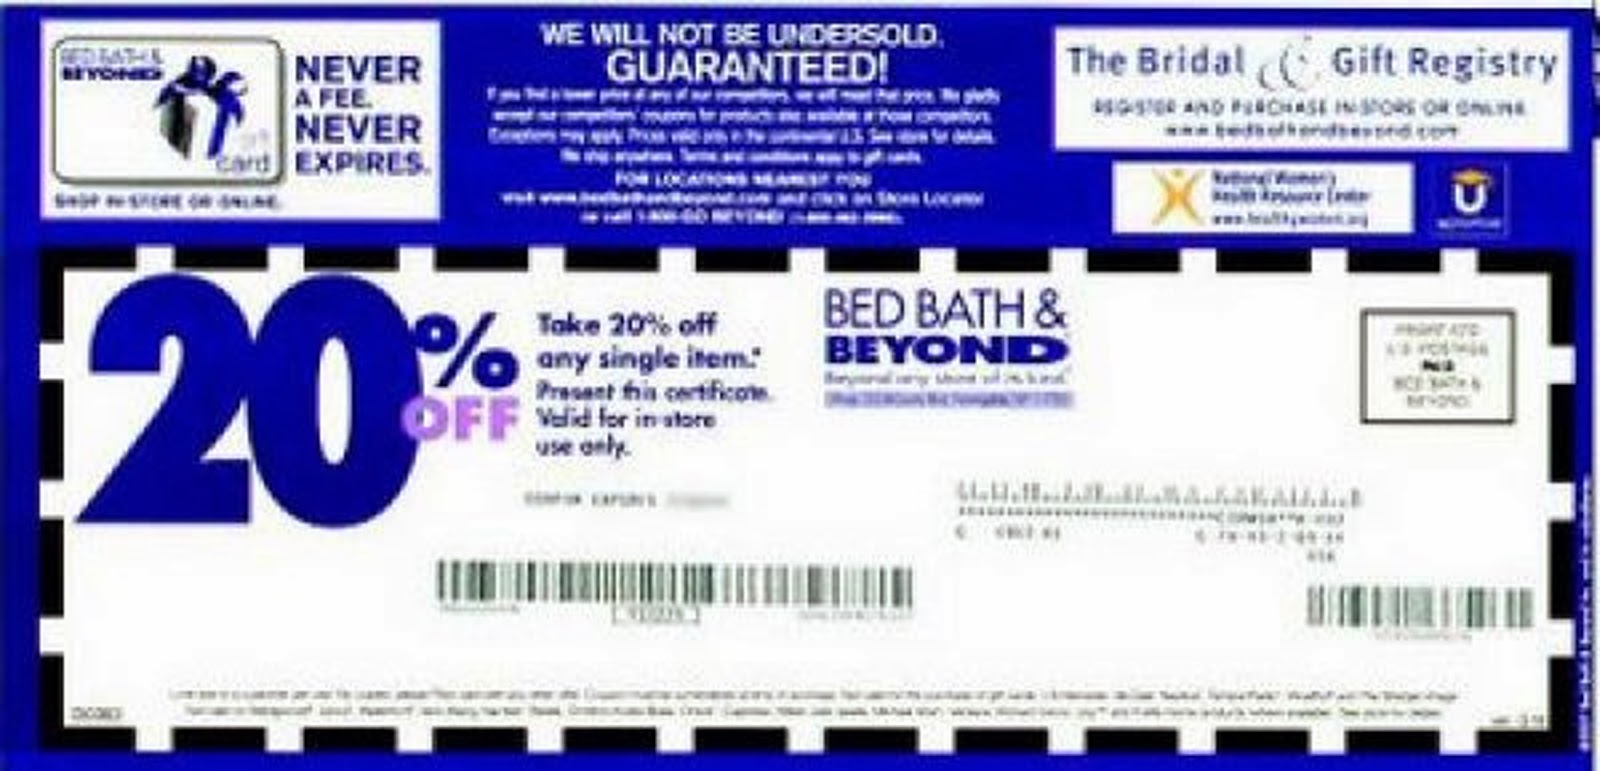 Bed Bath And Beyond Wedding Registry Discount